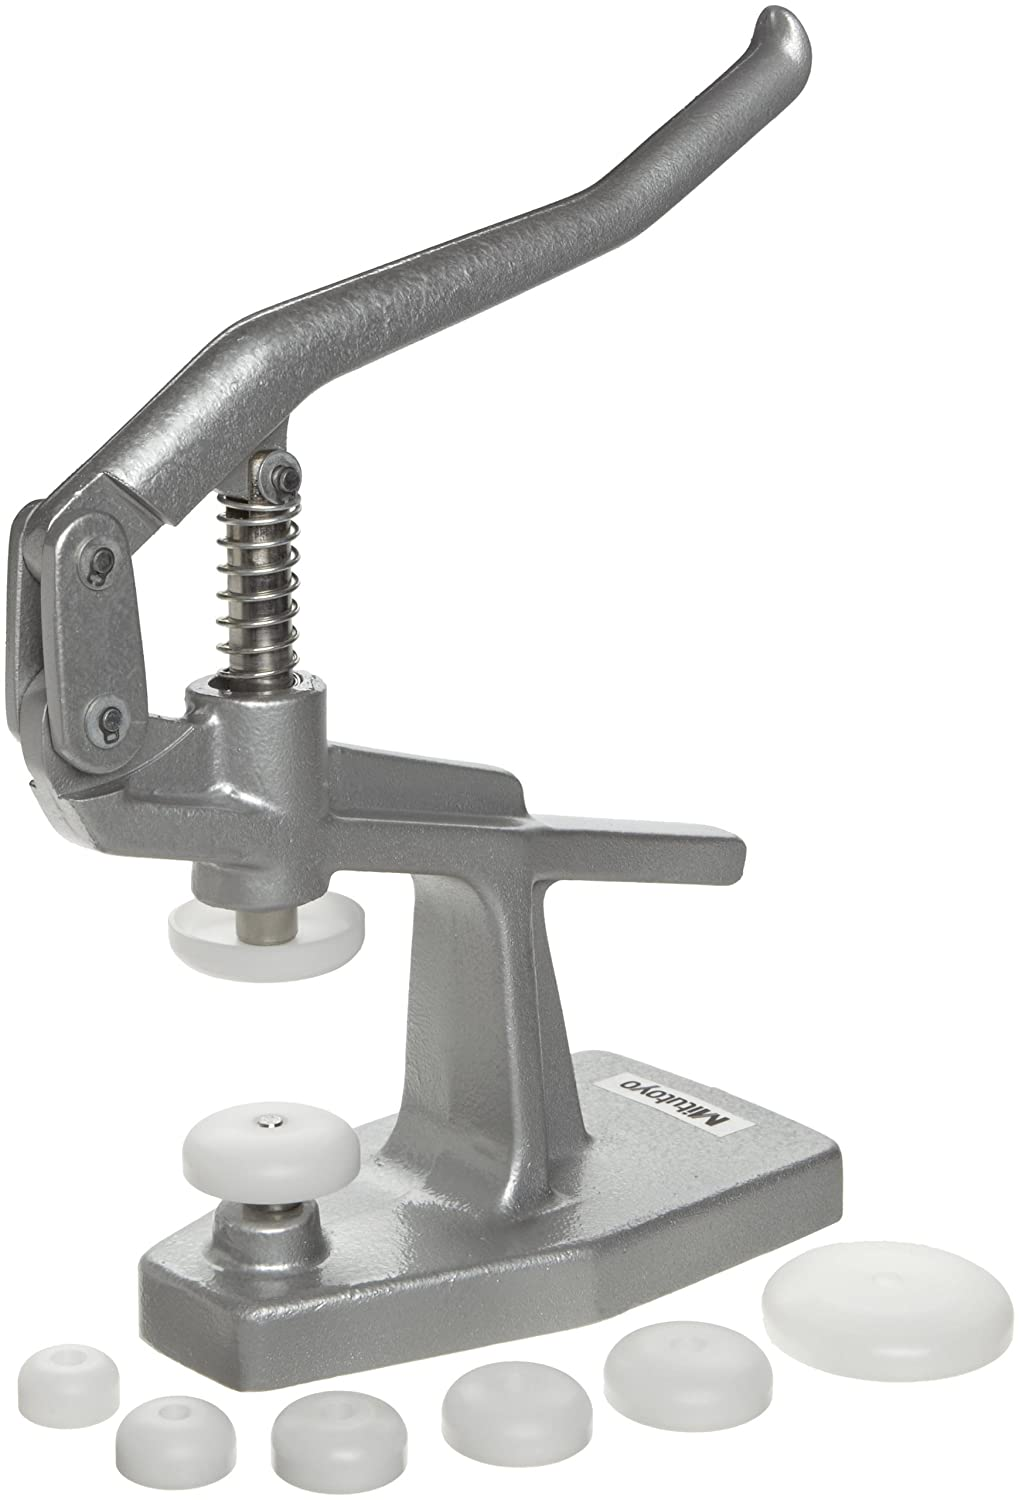 Mitutoyo 7000 Dial Indicator Crystal Setter